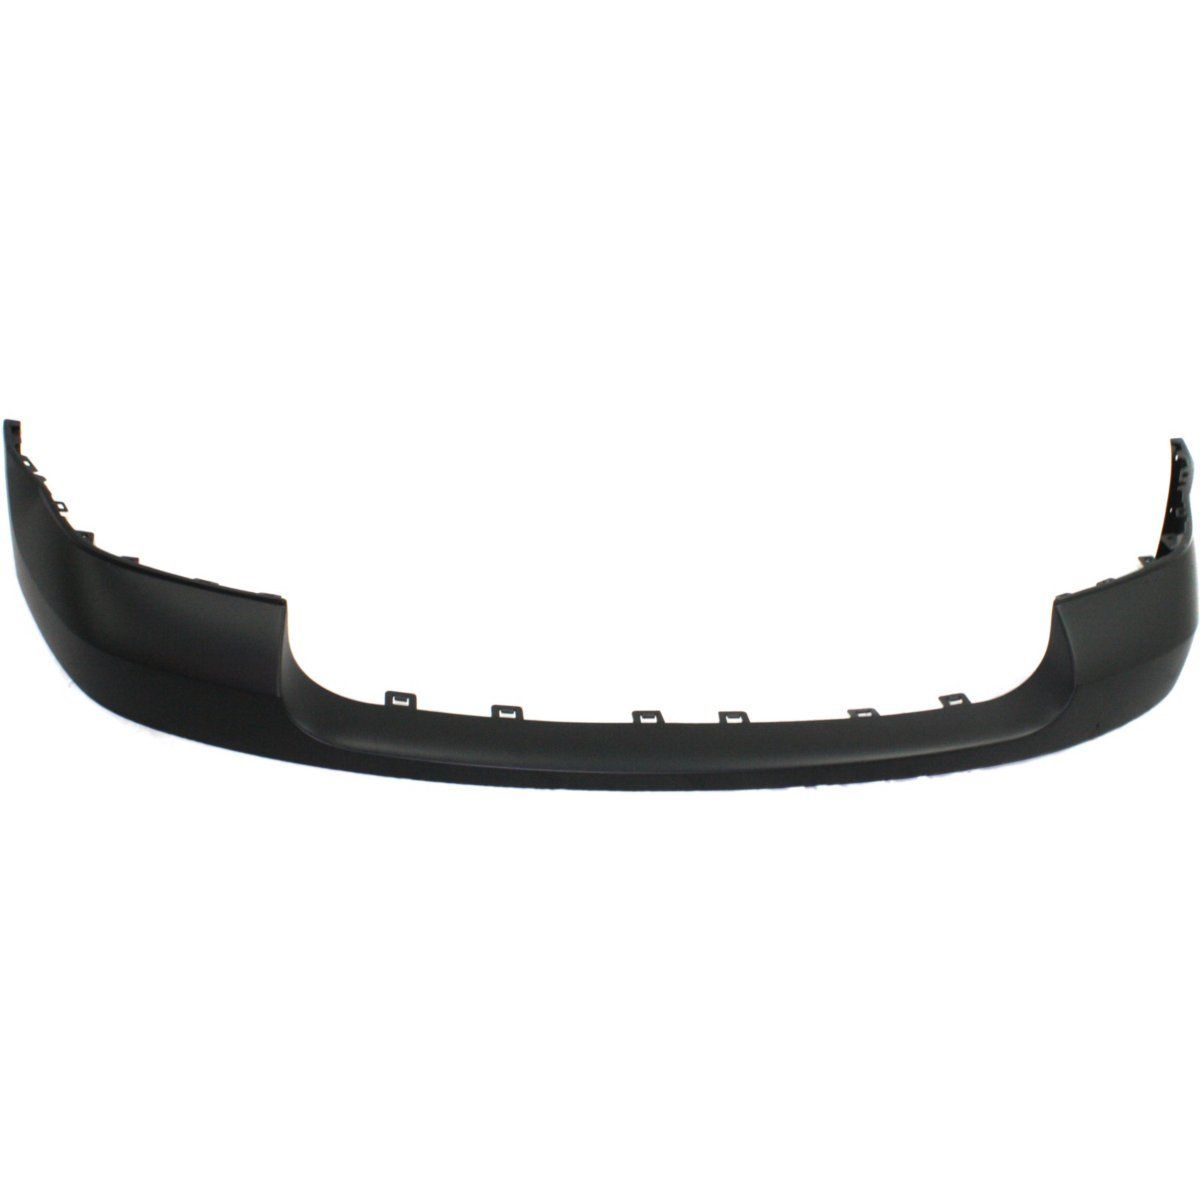 2007-2010 GMC SIERRA 1500 Front Bumper Cover 2500/3500  Black Painted to Match